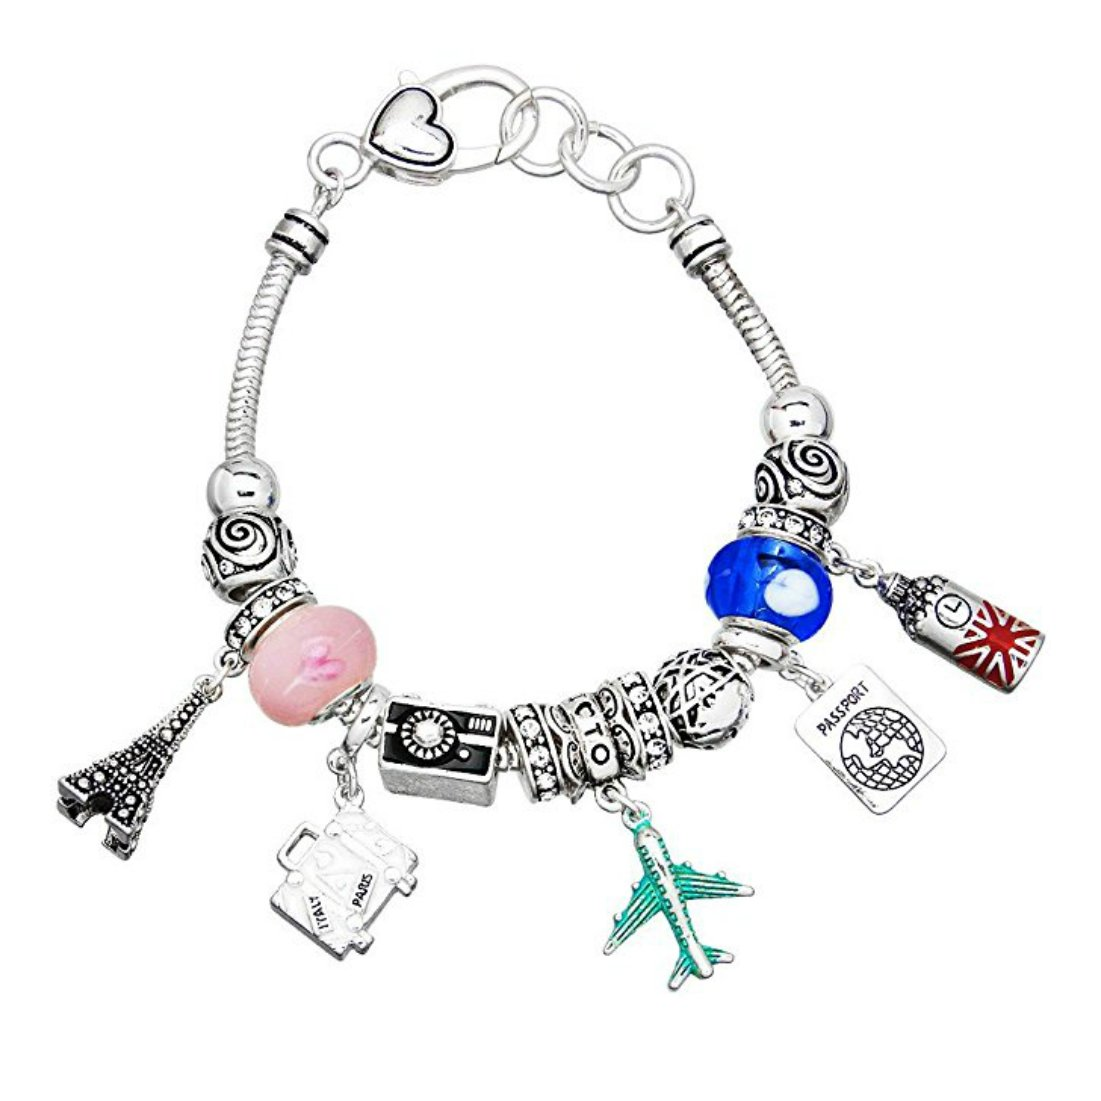 ''Travel'' Theme Silver-Tone Multi Bead Bracelet w/Multi Color Accents and Lobster Clasp By Athena Brand